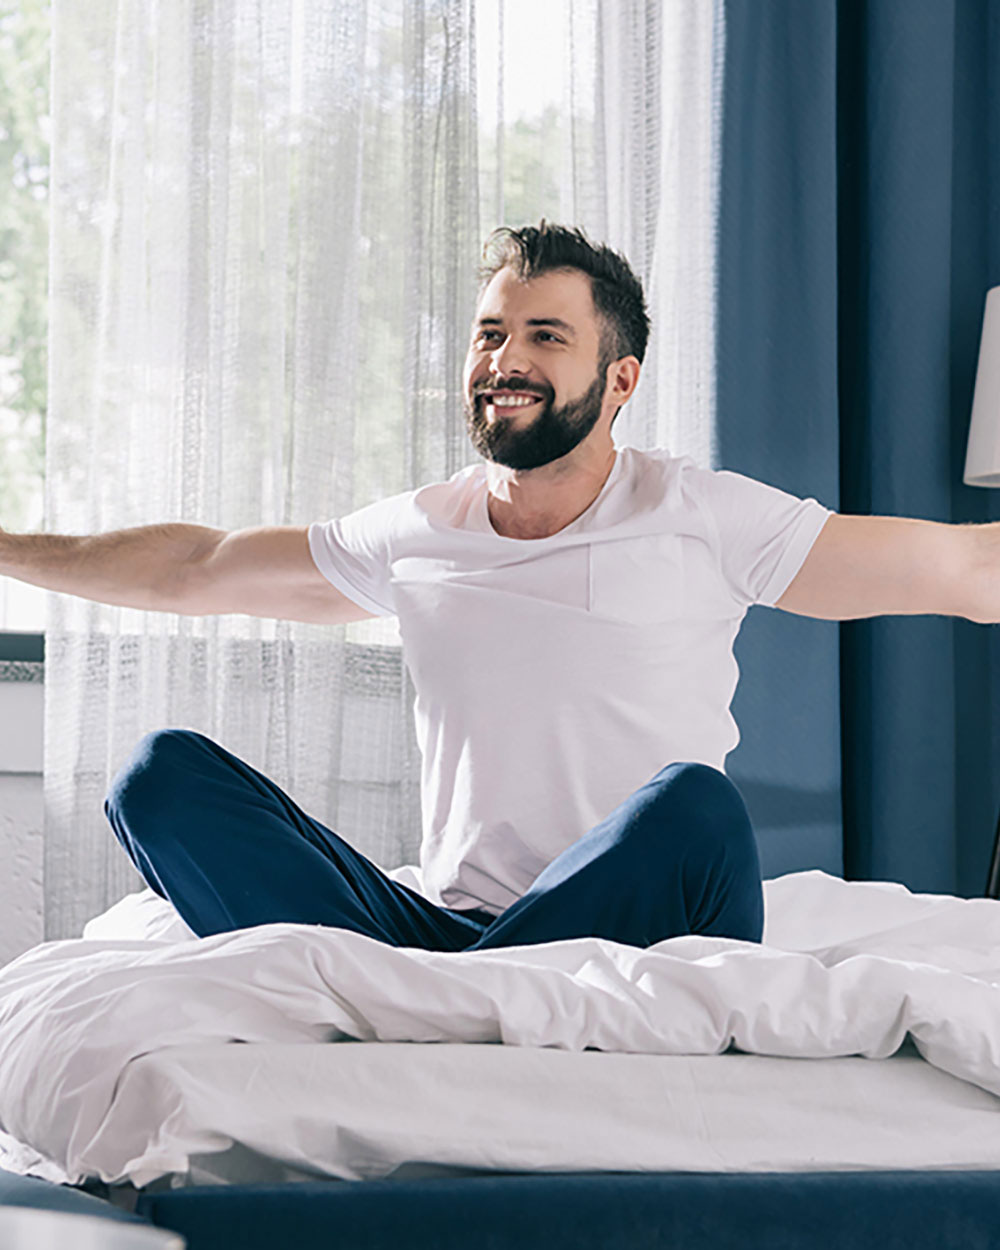 Image of Man Waking Up Refreshed and Happy